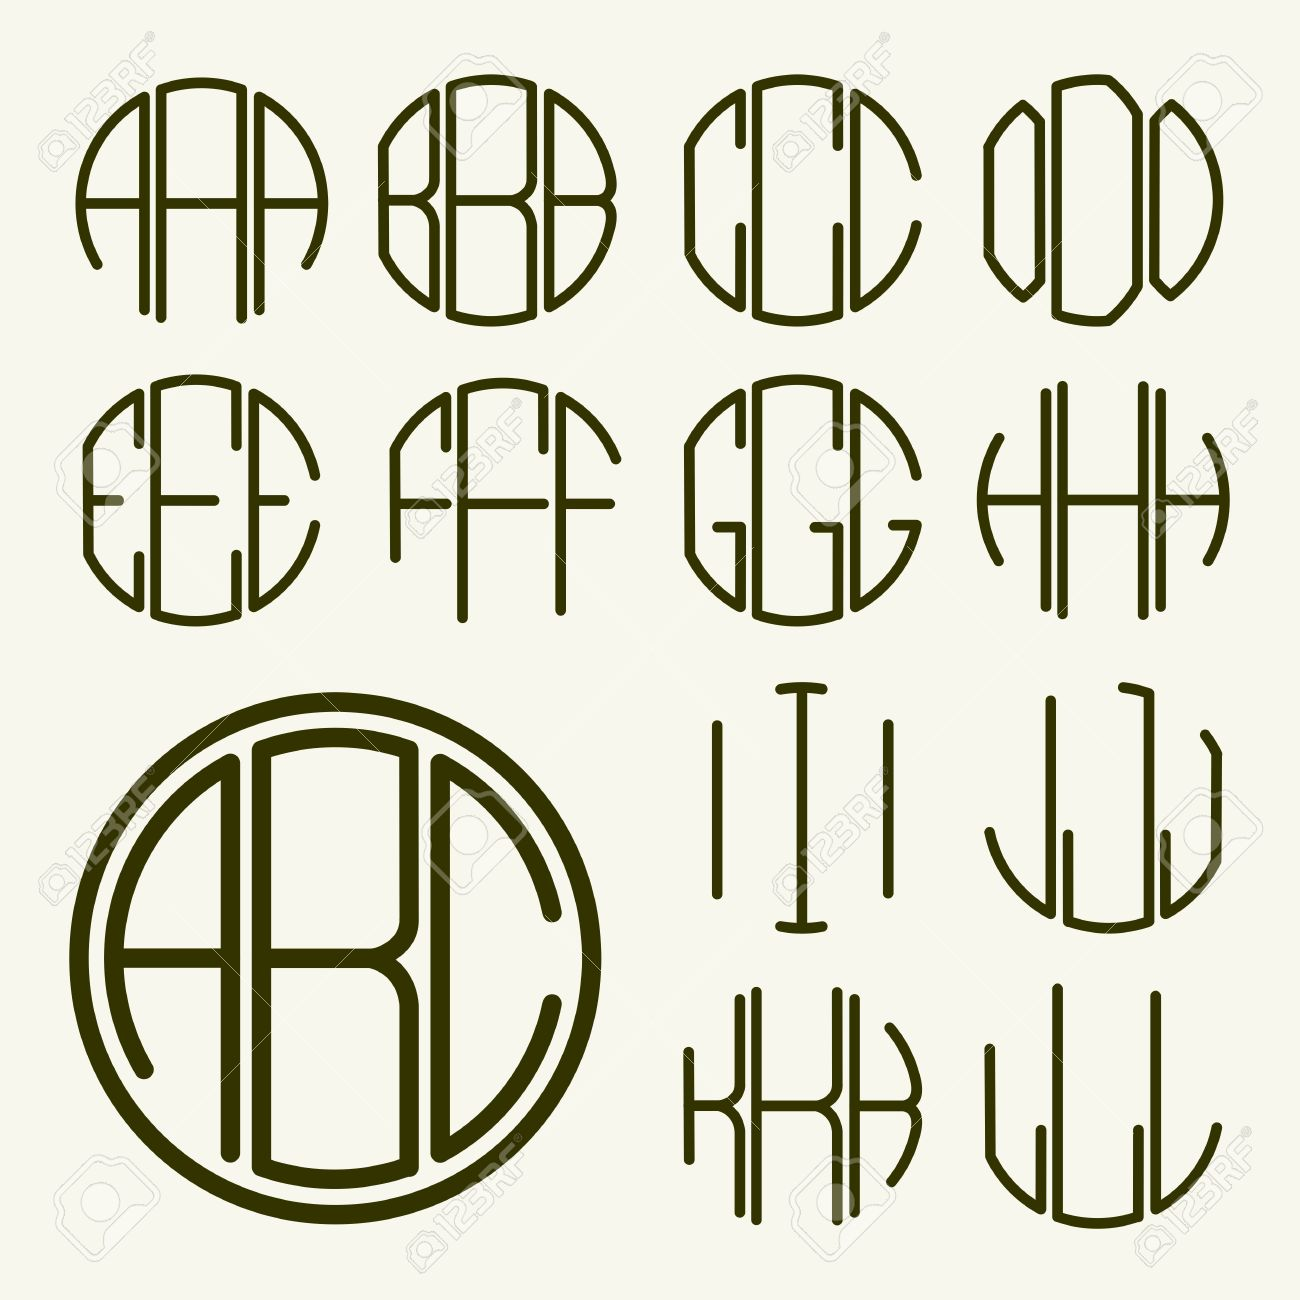 set 1 template letters to create a monogram of three letters inscribed in a circle in